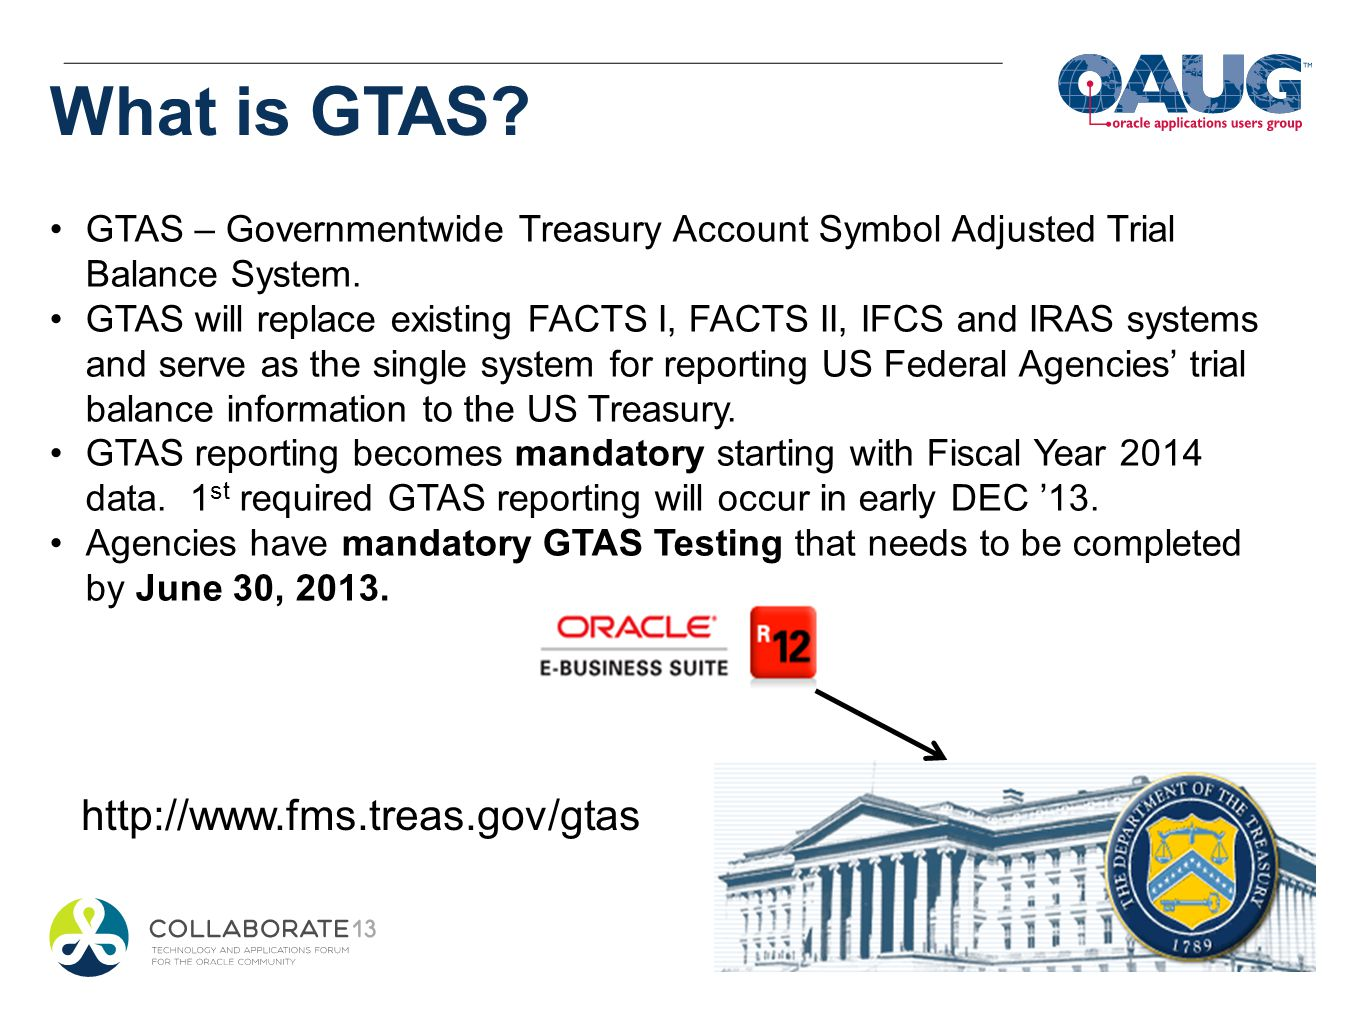 What is GTAS http://www.fms.treas.gov/gtas